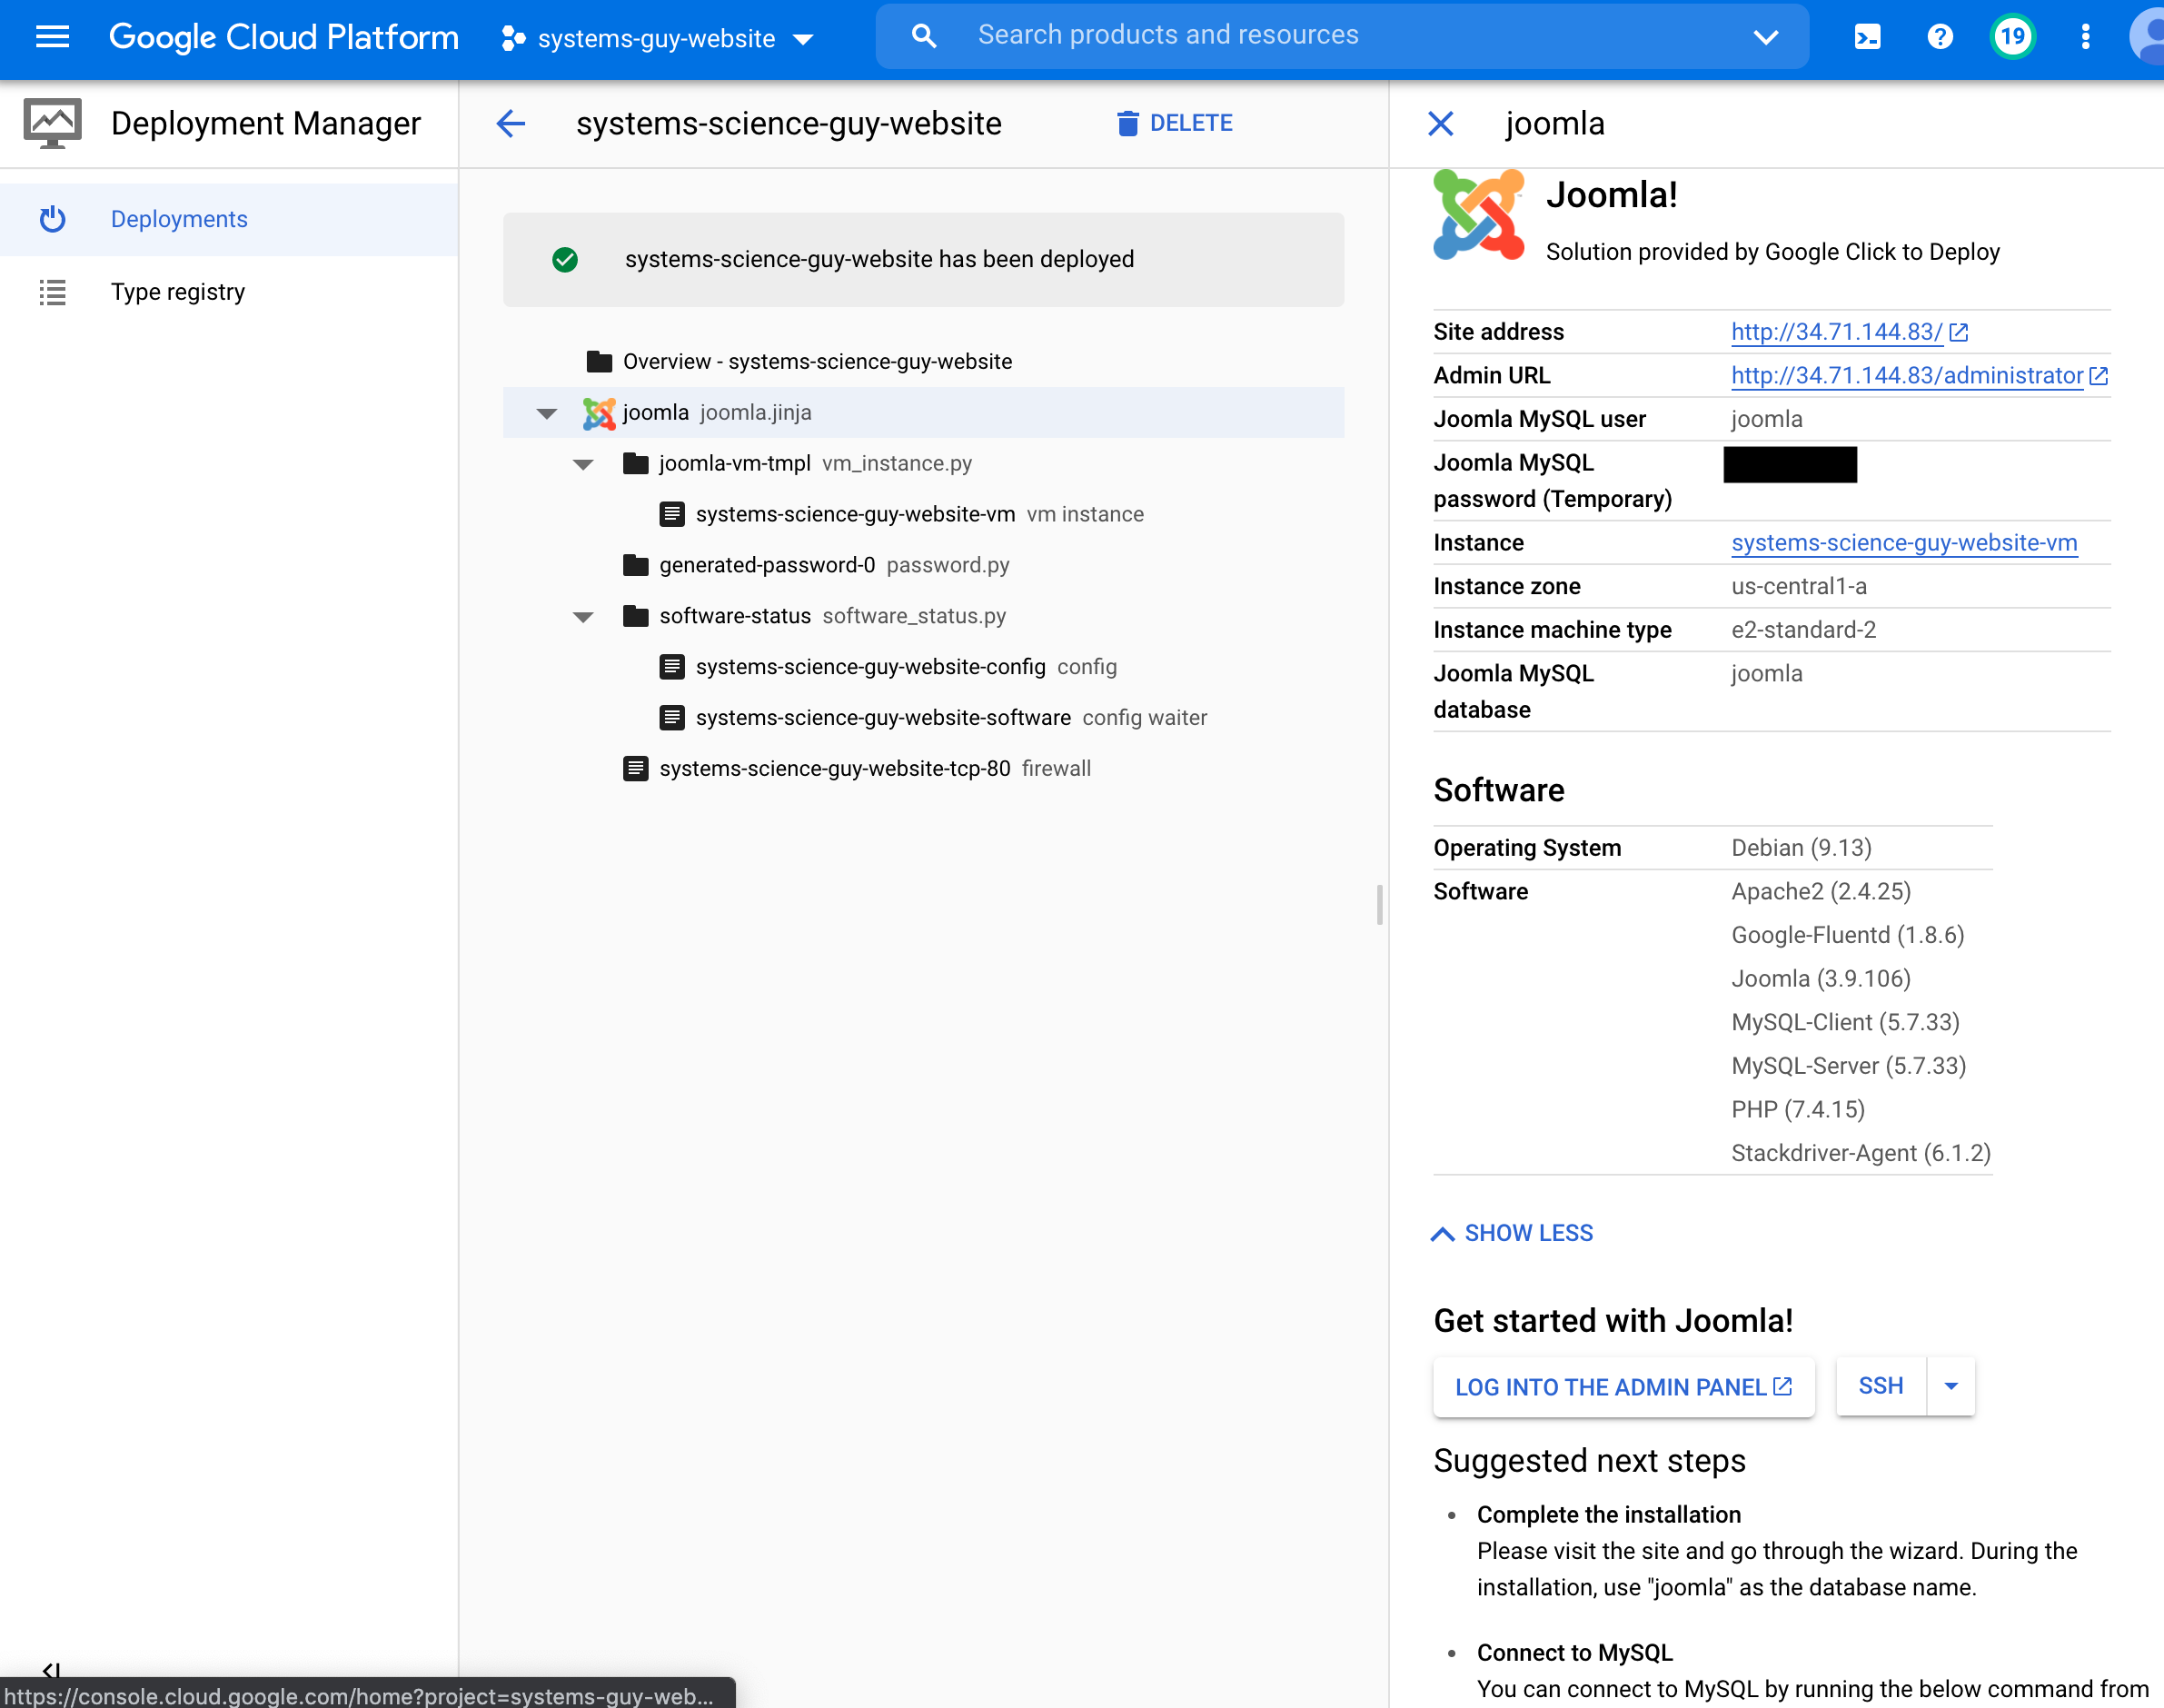 GCP Deployment Manager